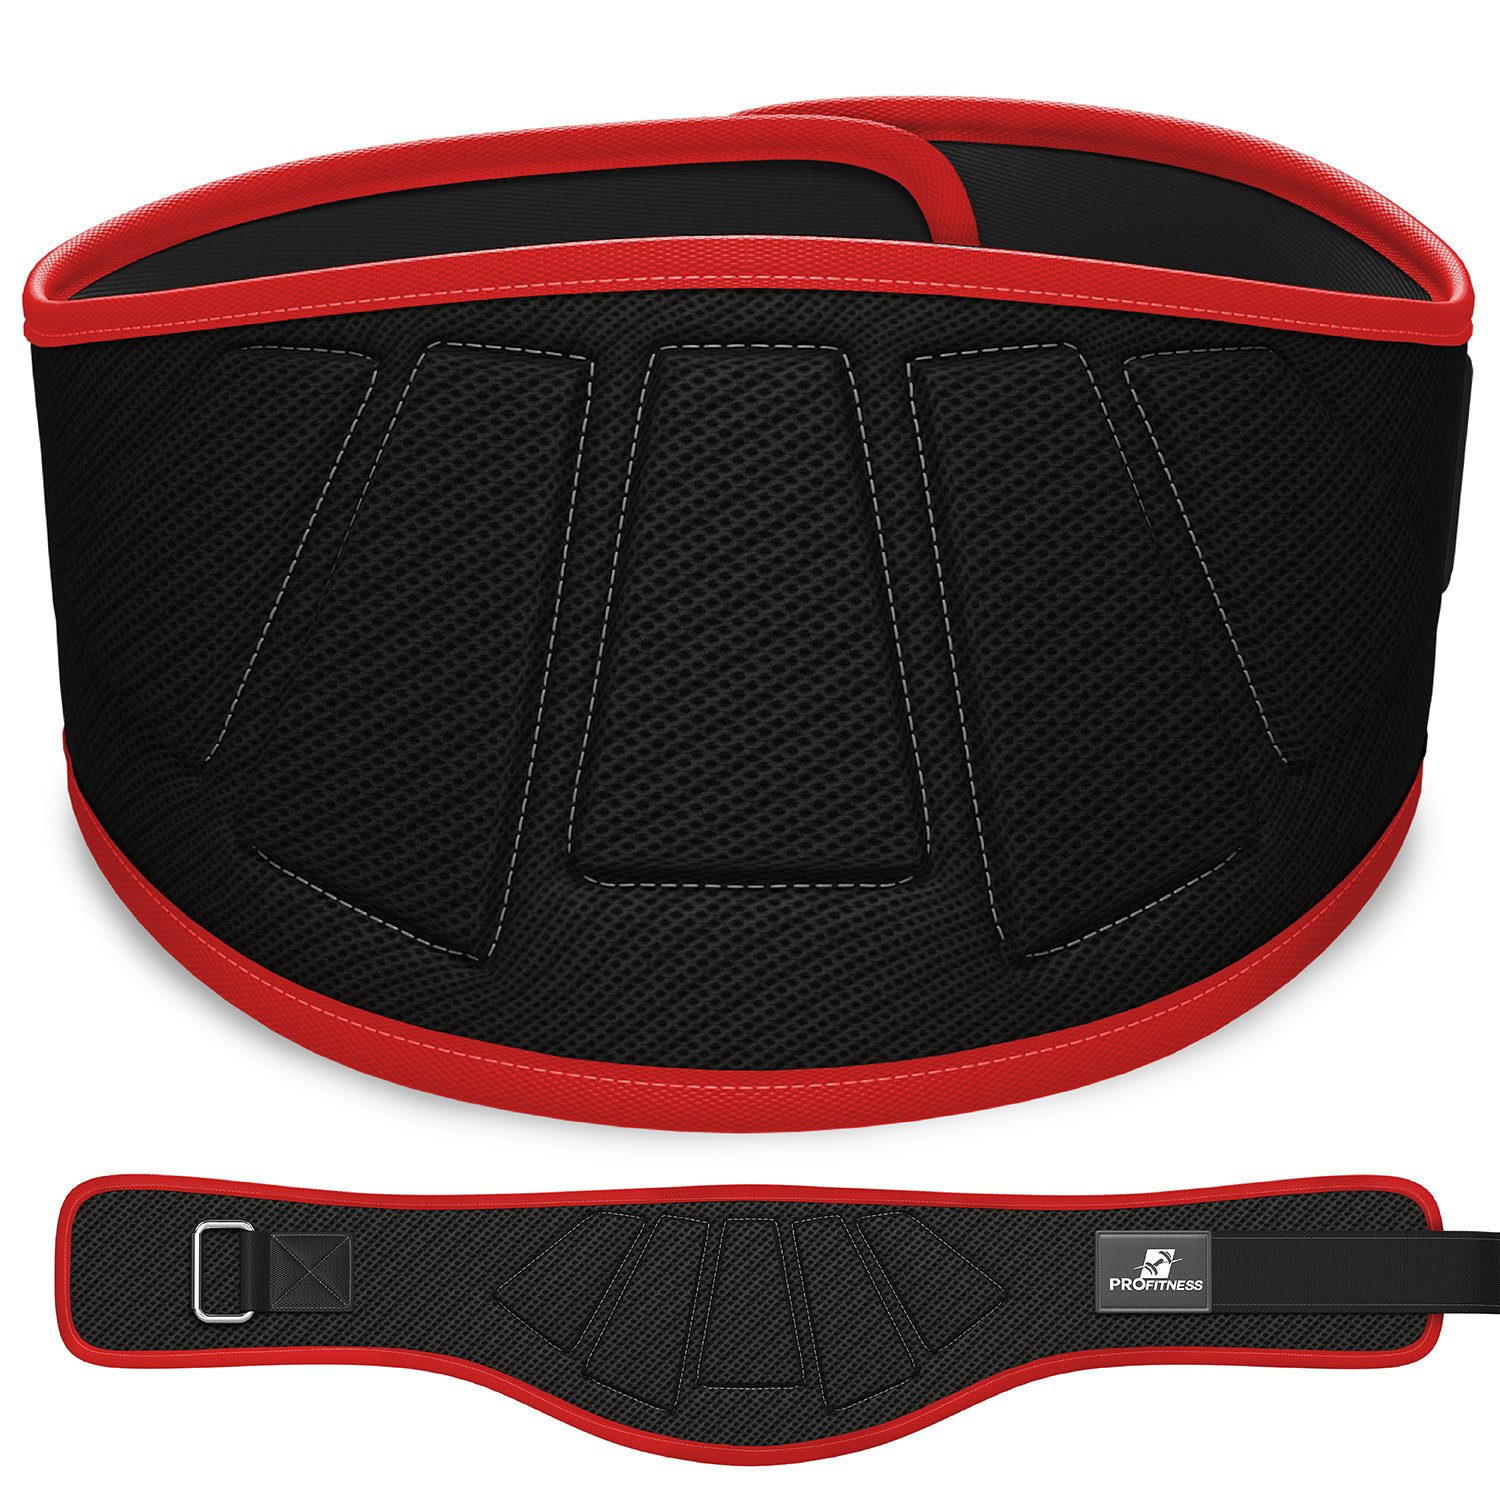 ProFitness Weightlifting Belt (6-Inch-Wide) - Proper Weight lifting Form - Unisex Back Support for Cross Training Exercises, Powerlifting Workouts (Black/Red, Small)